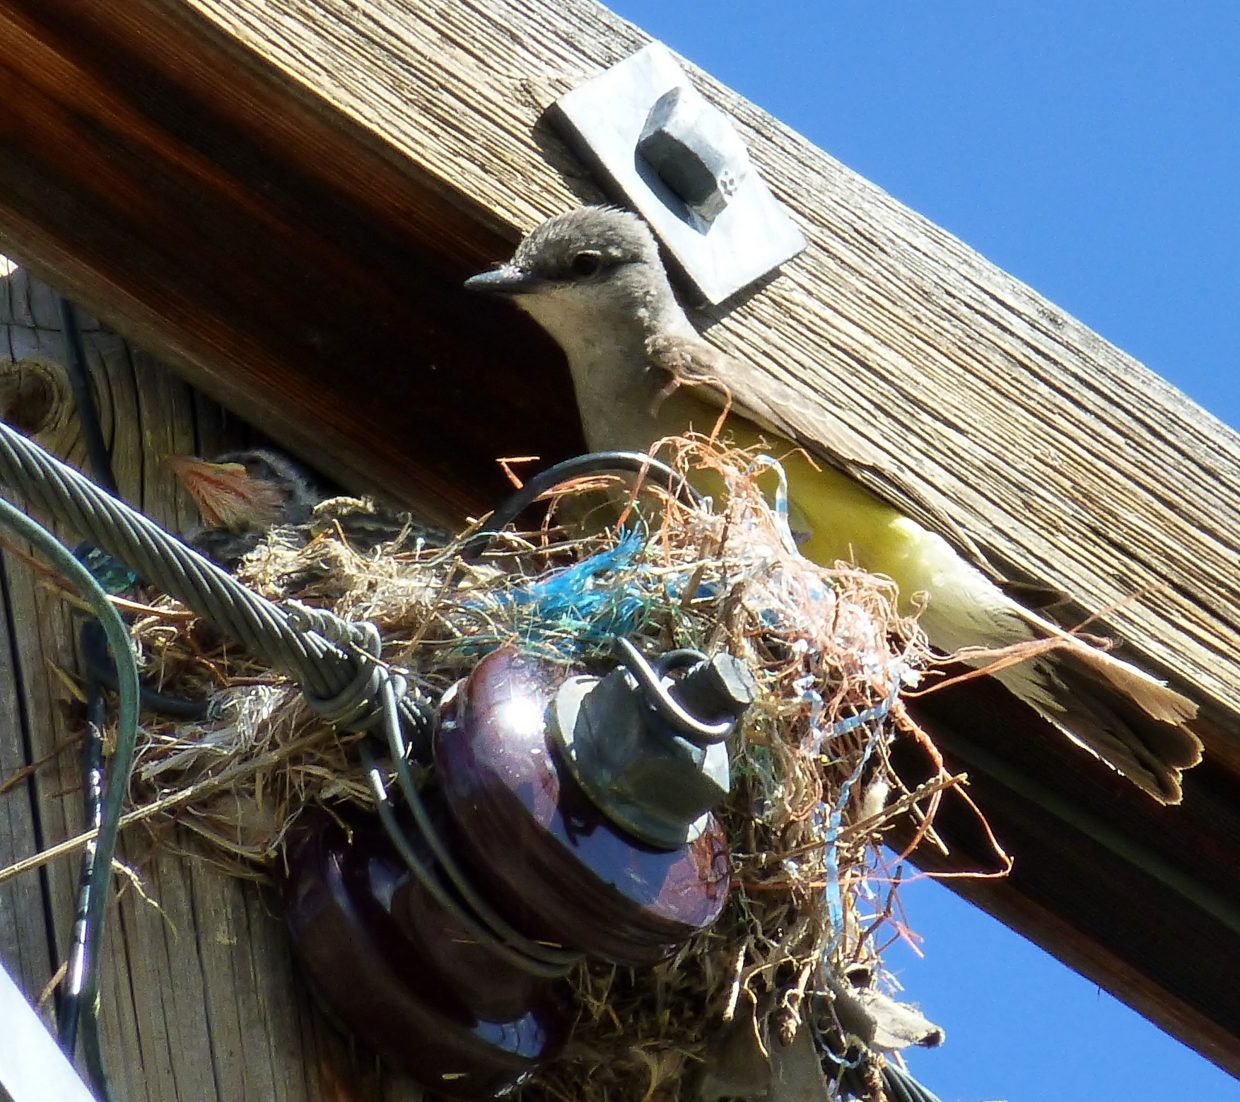 Feeding time for baby kingbird. Submitted by: Gail Hanley